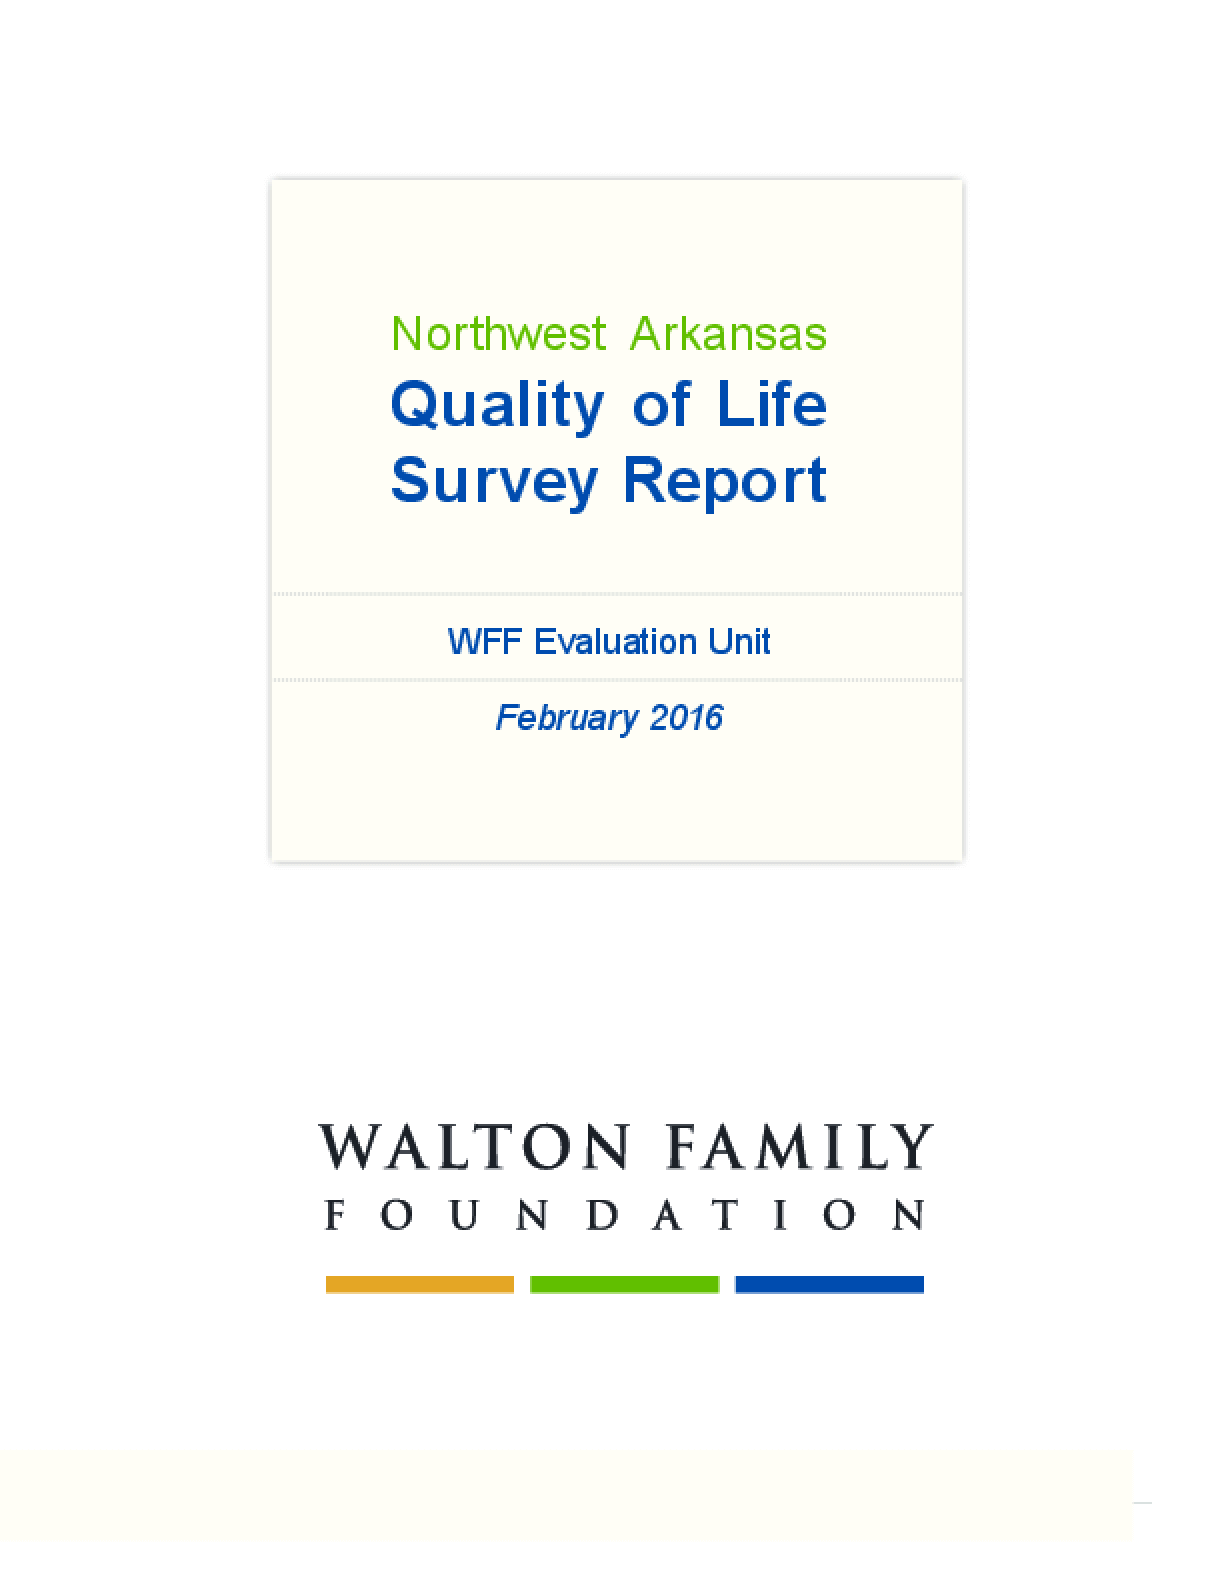 Northwest Arkansas Quality of Life Survey Report